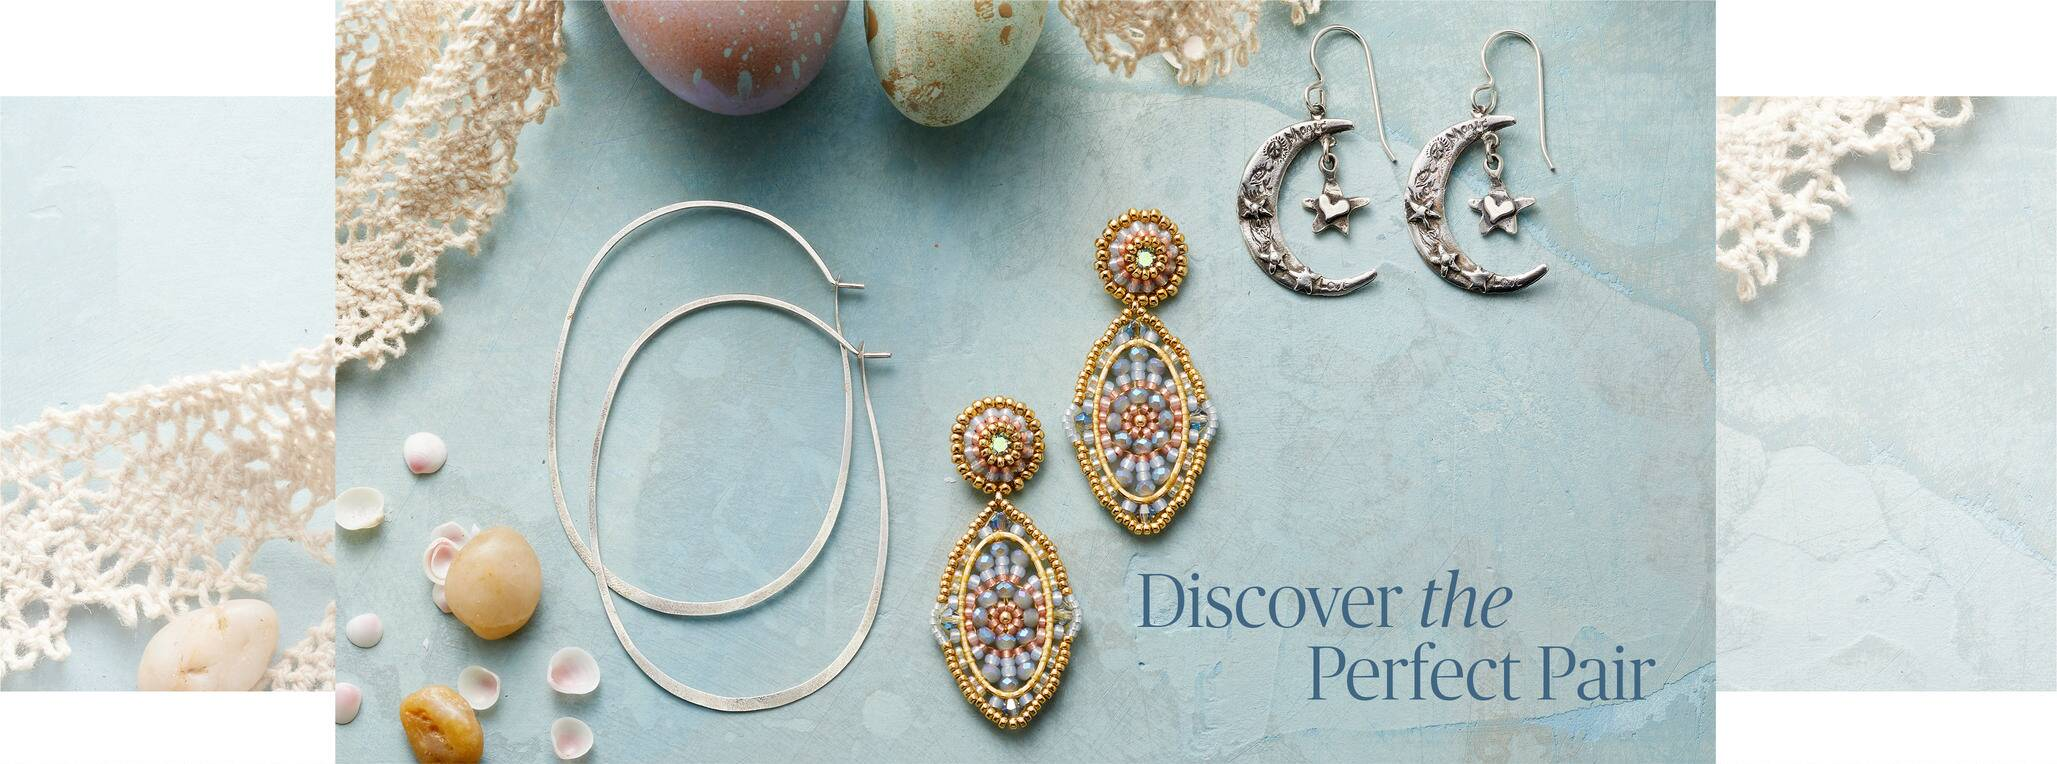 Discover the Perfect Pair